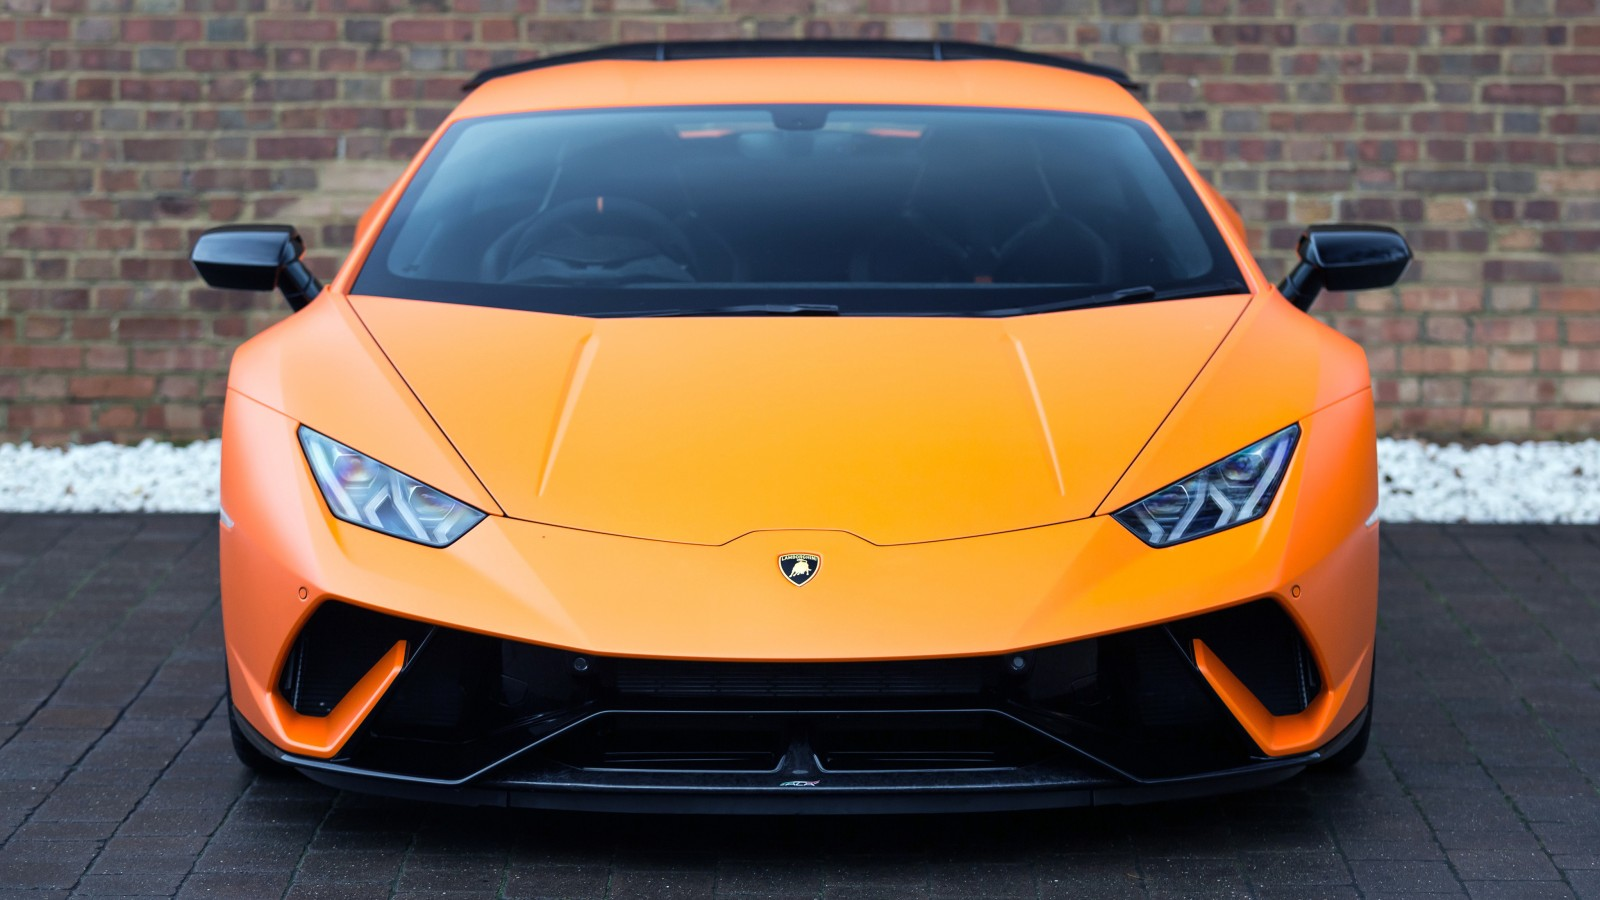 2017 Lamborghini Huracan Performante 4K 3 Wallpaper